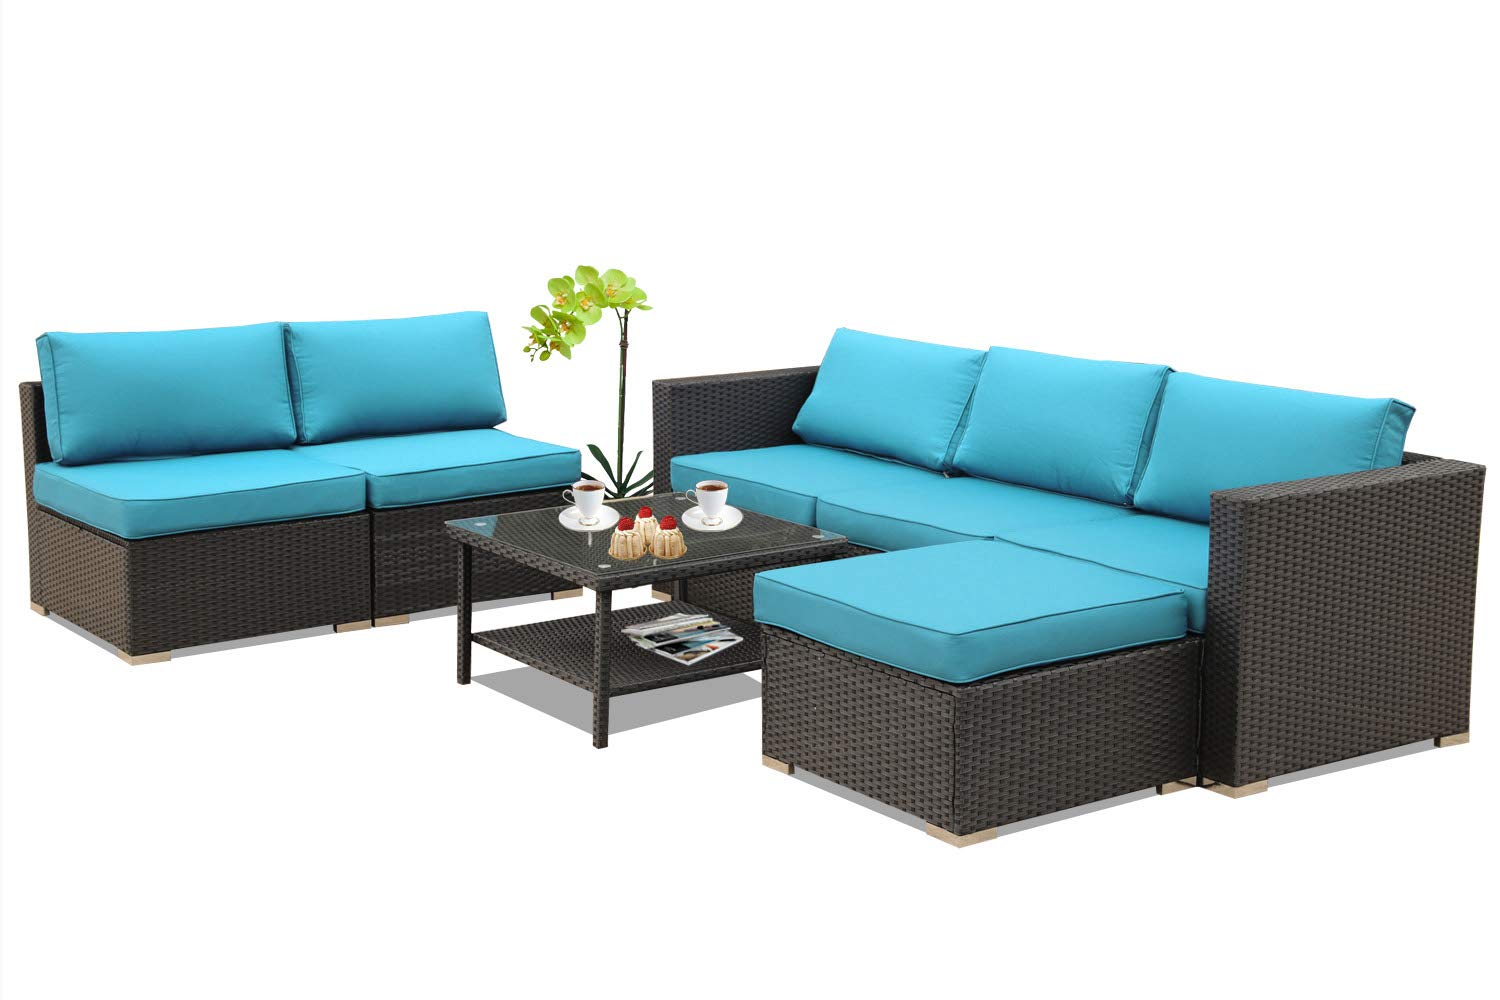 Amazon com leaptime patio furniture garden pe rattan sofa 7pcs outdoor sectional couch wicker easy assembled with turquoise cushion black wicker garden